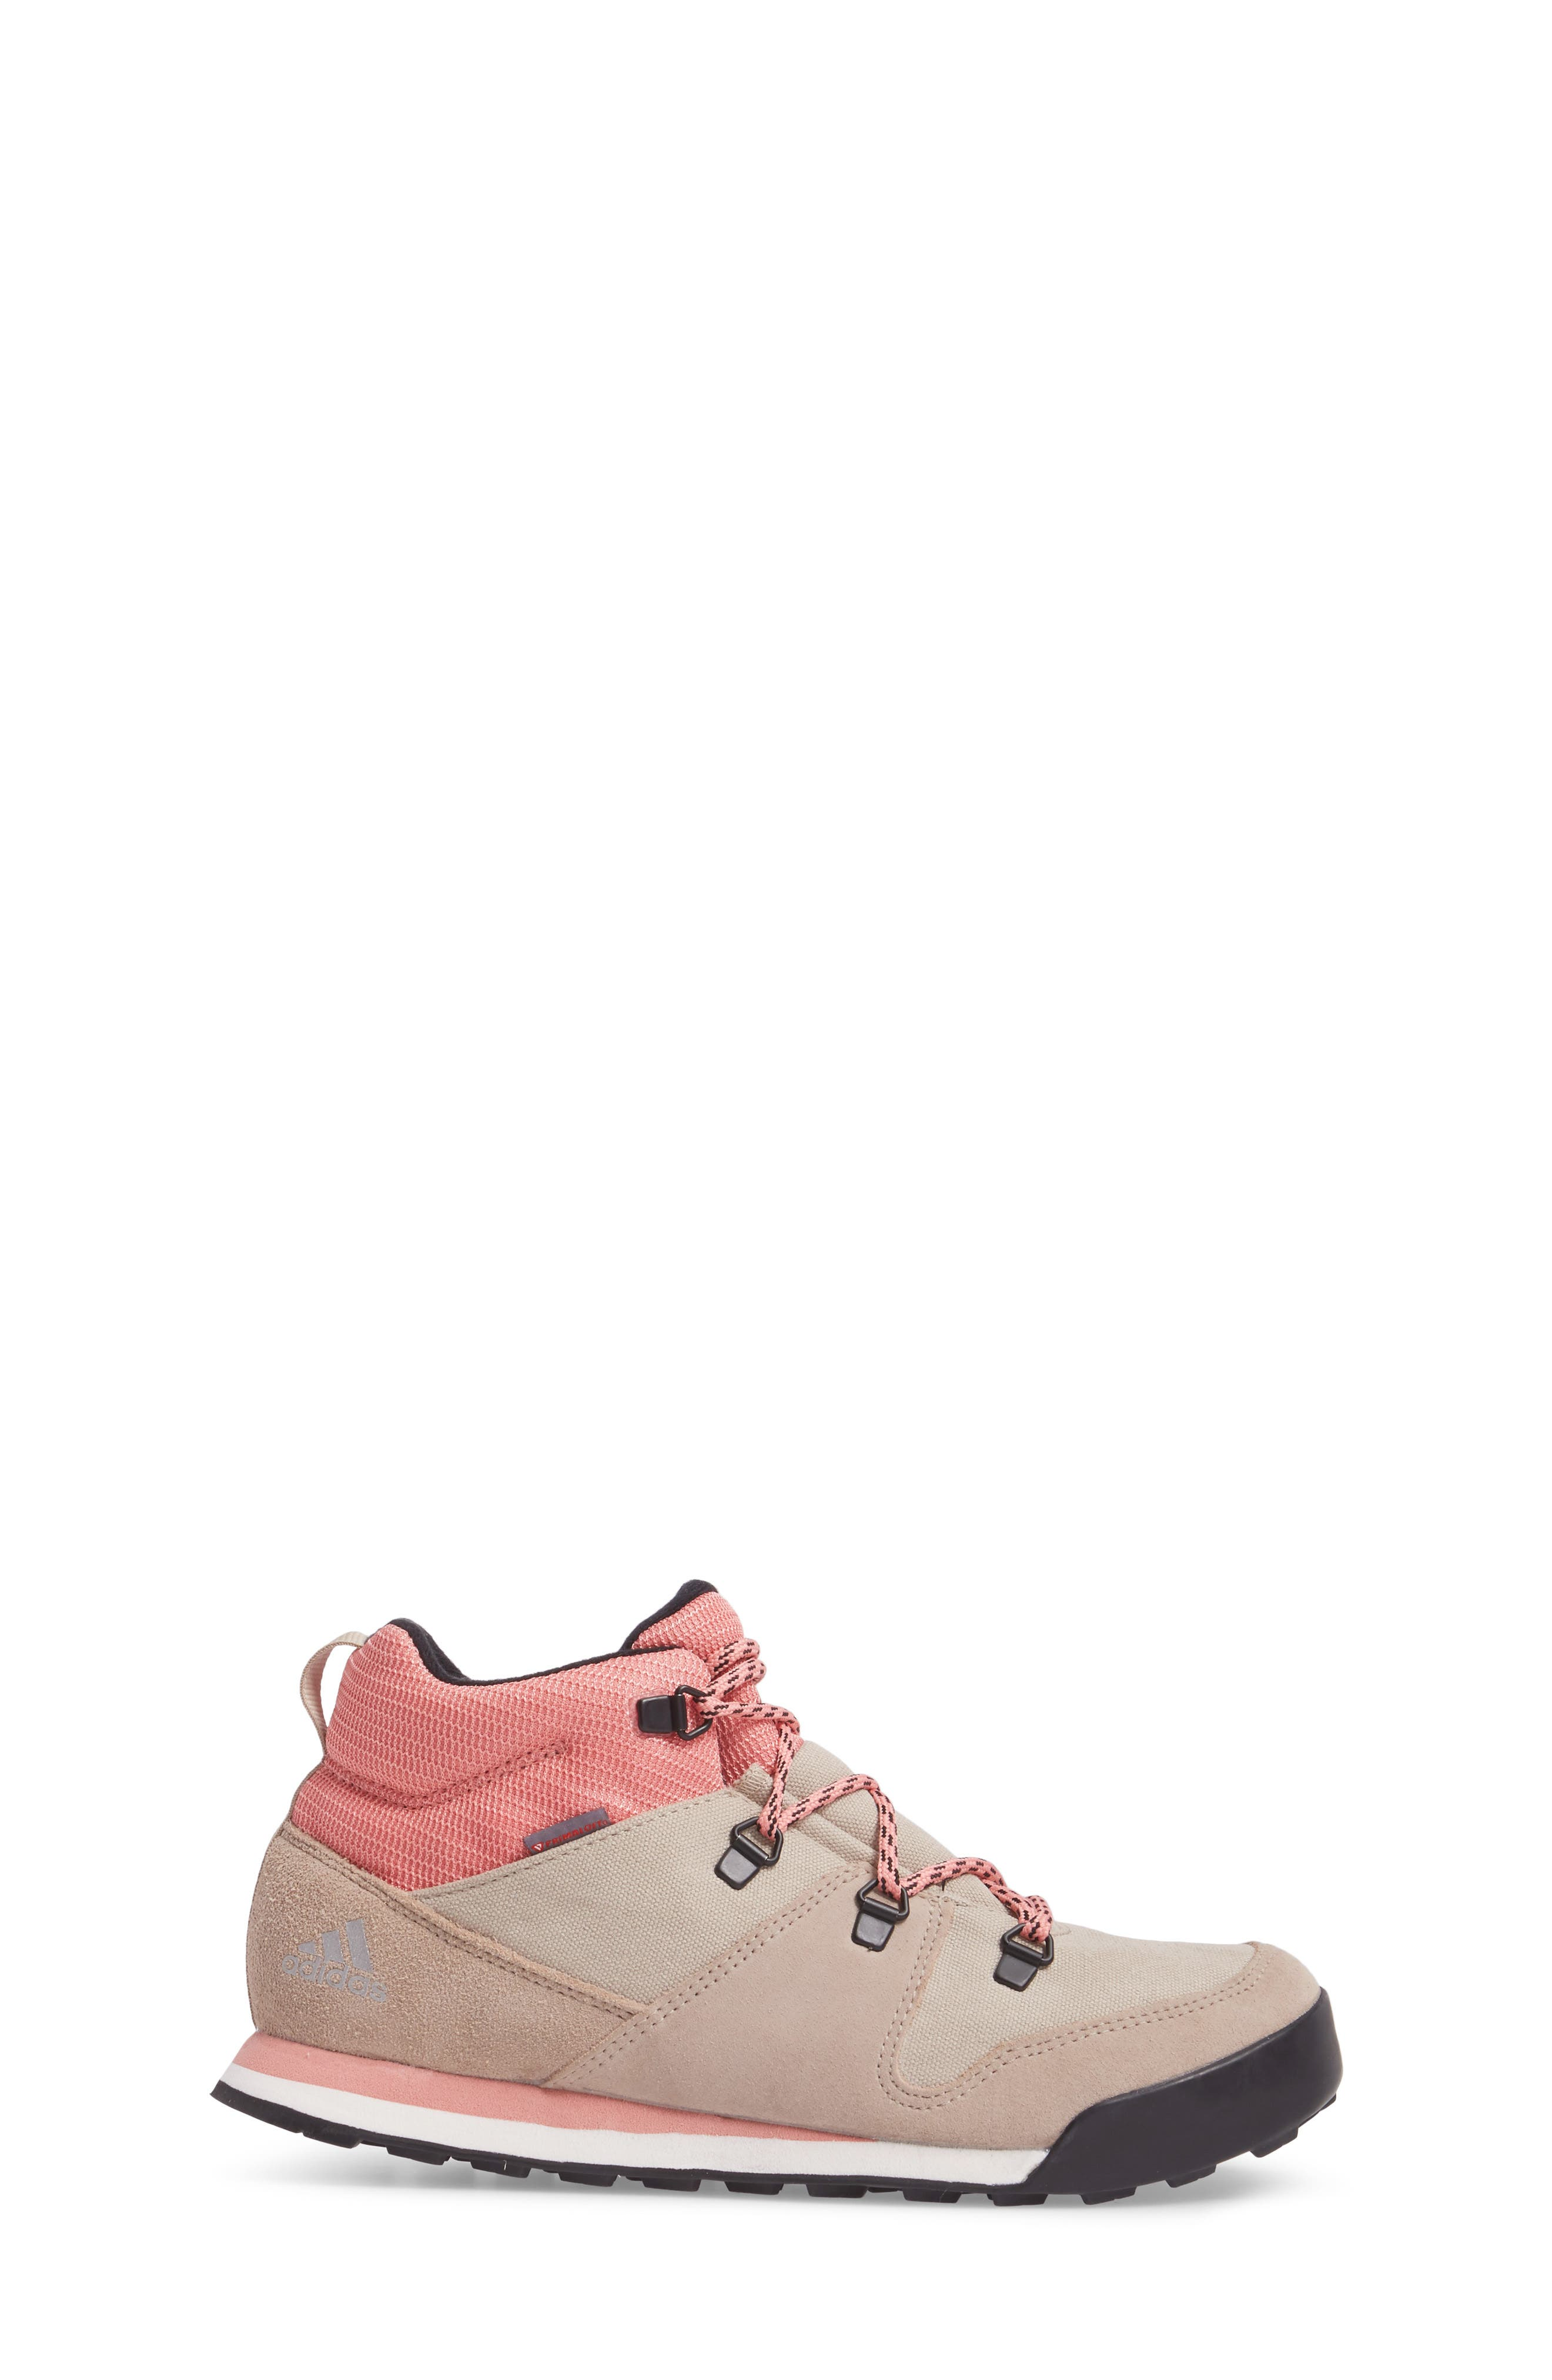 Snowpitch Insulated Sneaker Boot,                             Alternate thumbnail 3, color,                             Icey Pink/ Khaki/ Energy Pink